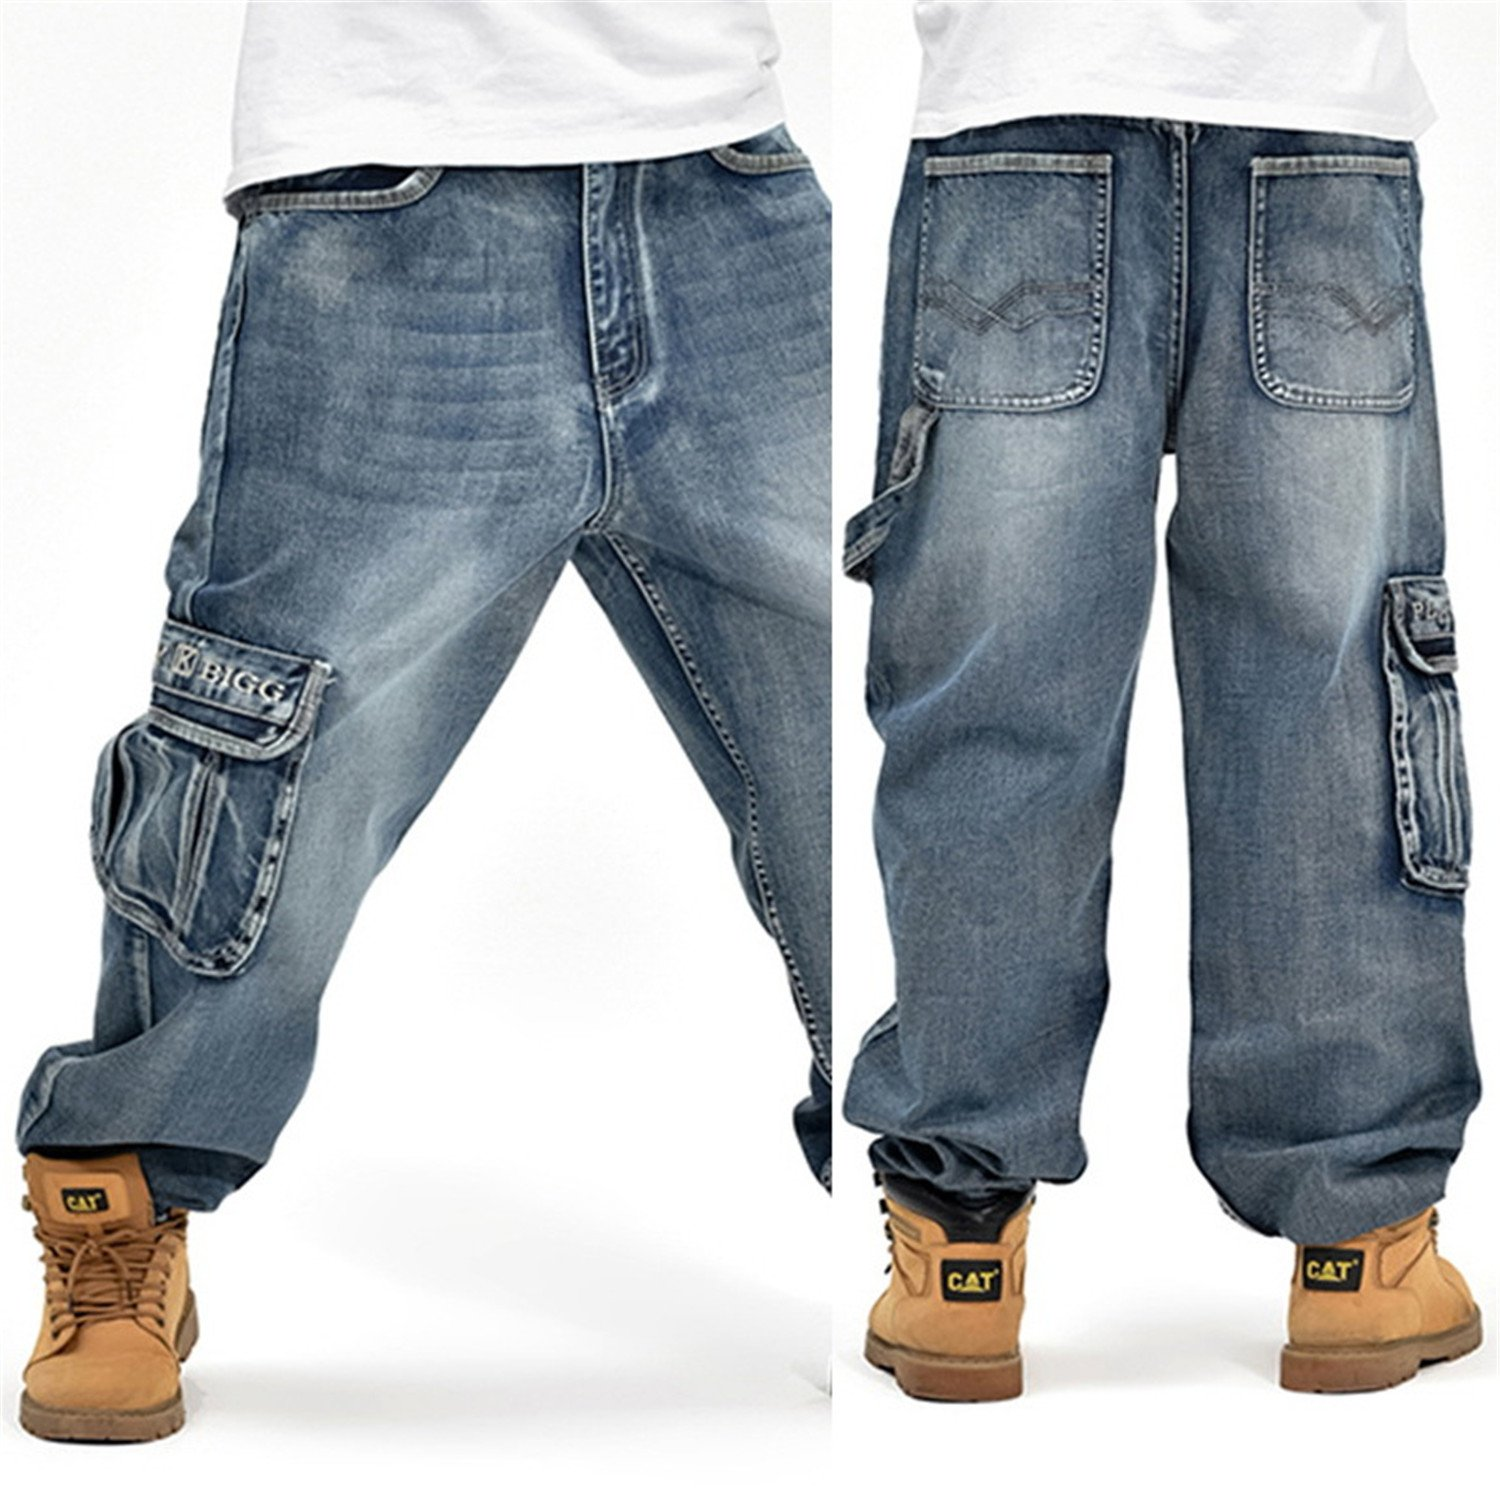 Richard Nguyen New Casual Large Size Jeans Men Plus Fertilizer To Increase The Individuality Fashion Hip-Hop Jeans Loose